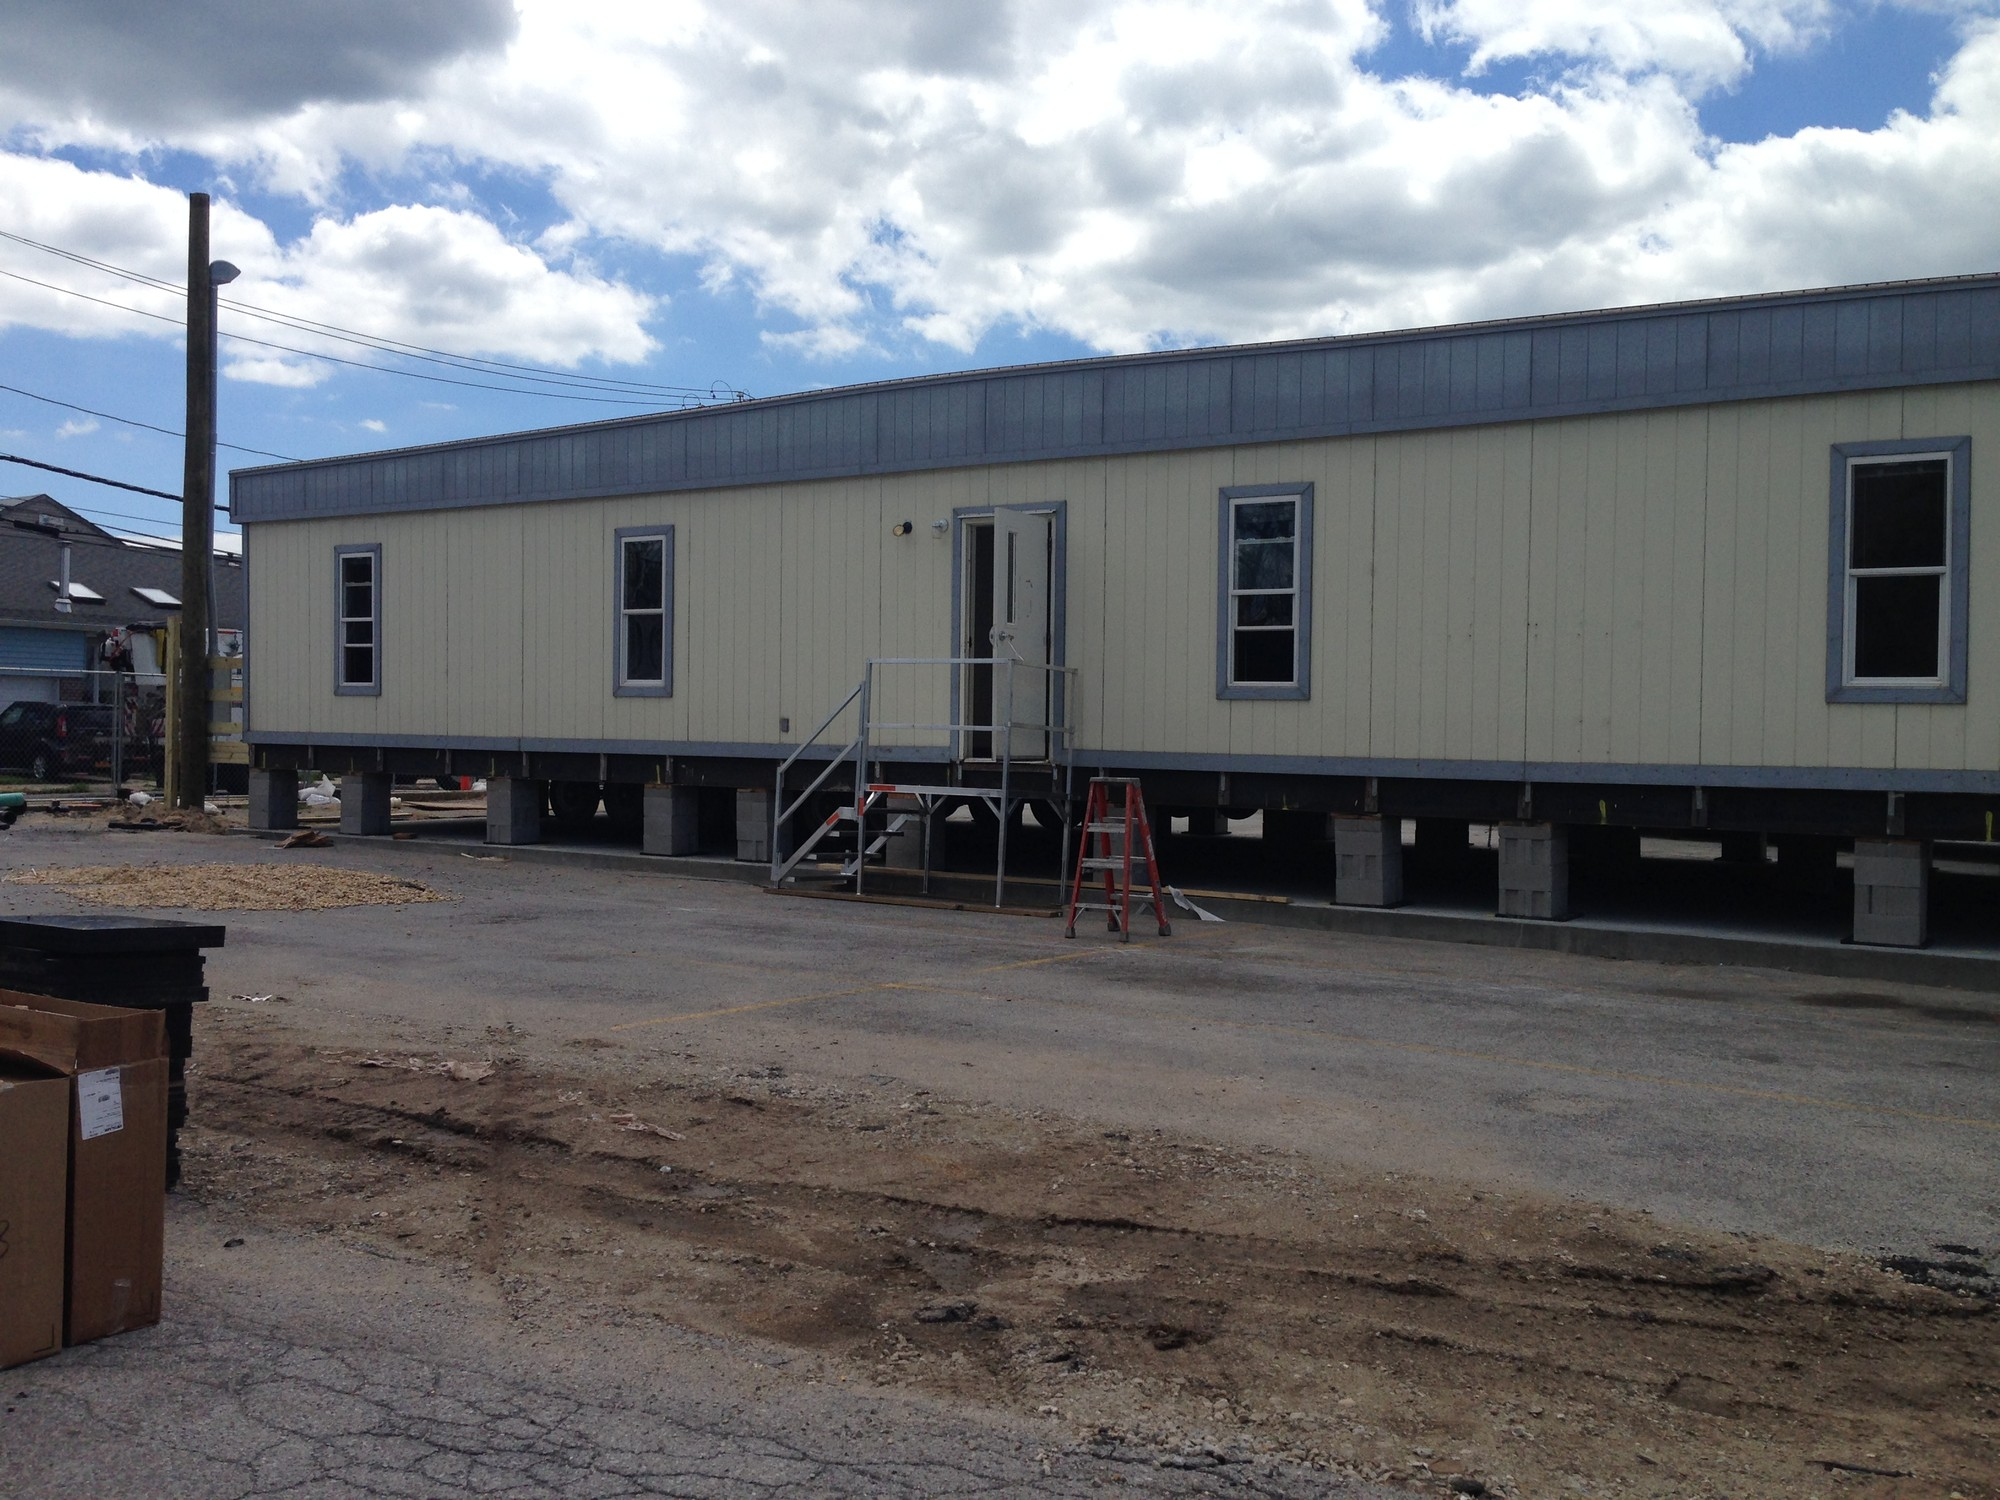 South Nassau began installation of the urgent care modular unit on Friday. The facility is expected to open on July 1.